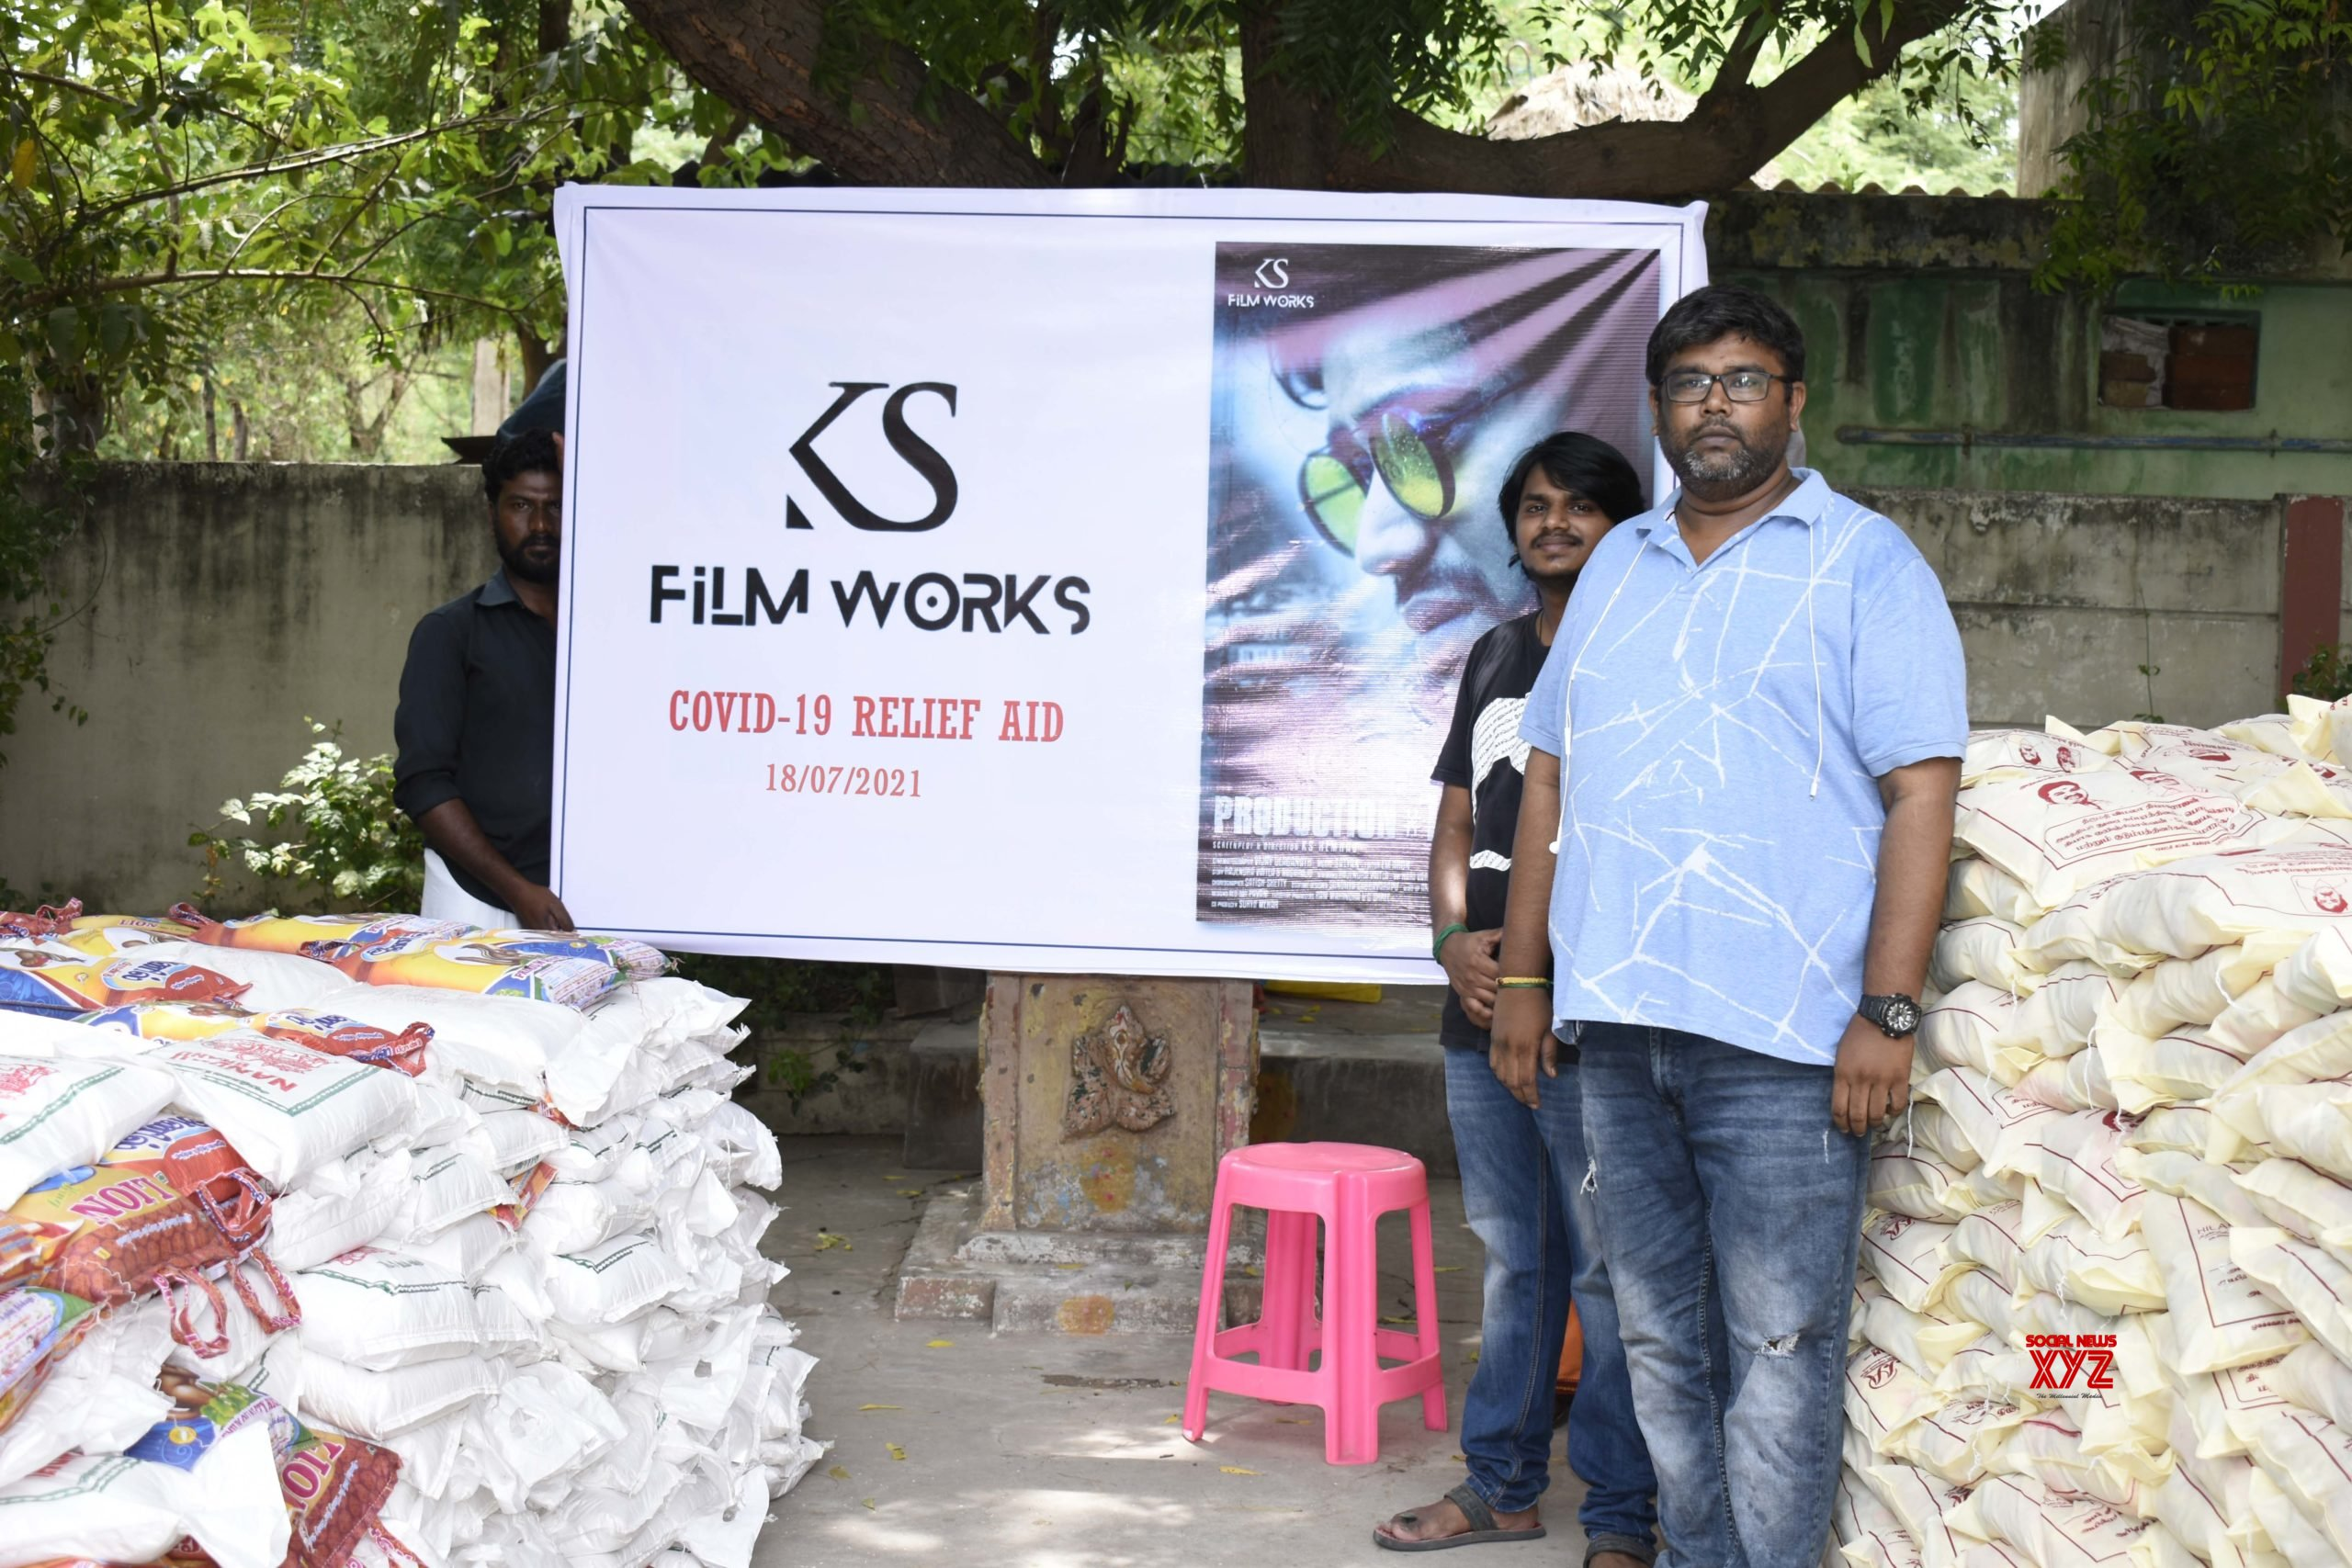 KS Film Works Has Been Helping Nearly 1000 Families Who Lost Their Jobs Due To The Lockdown